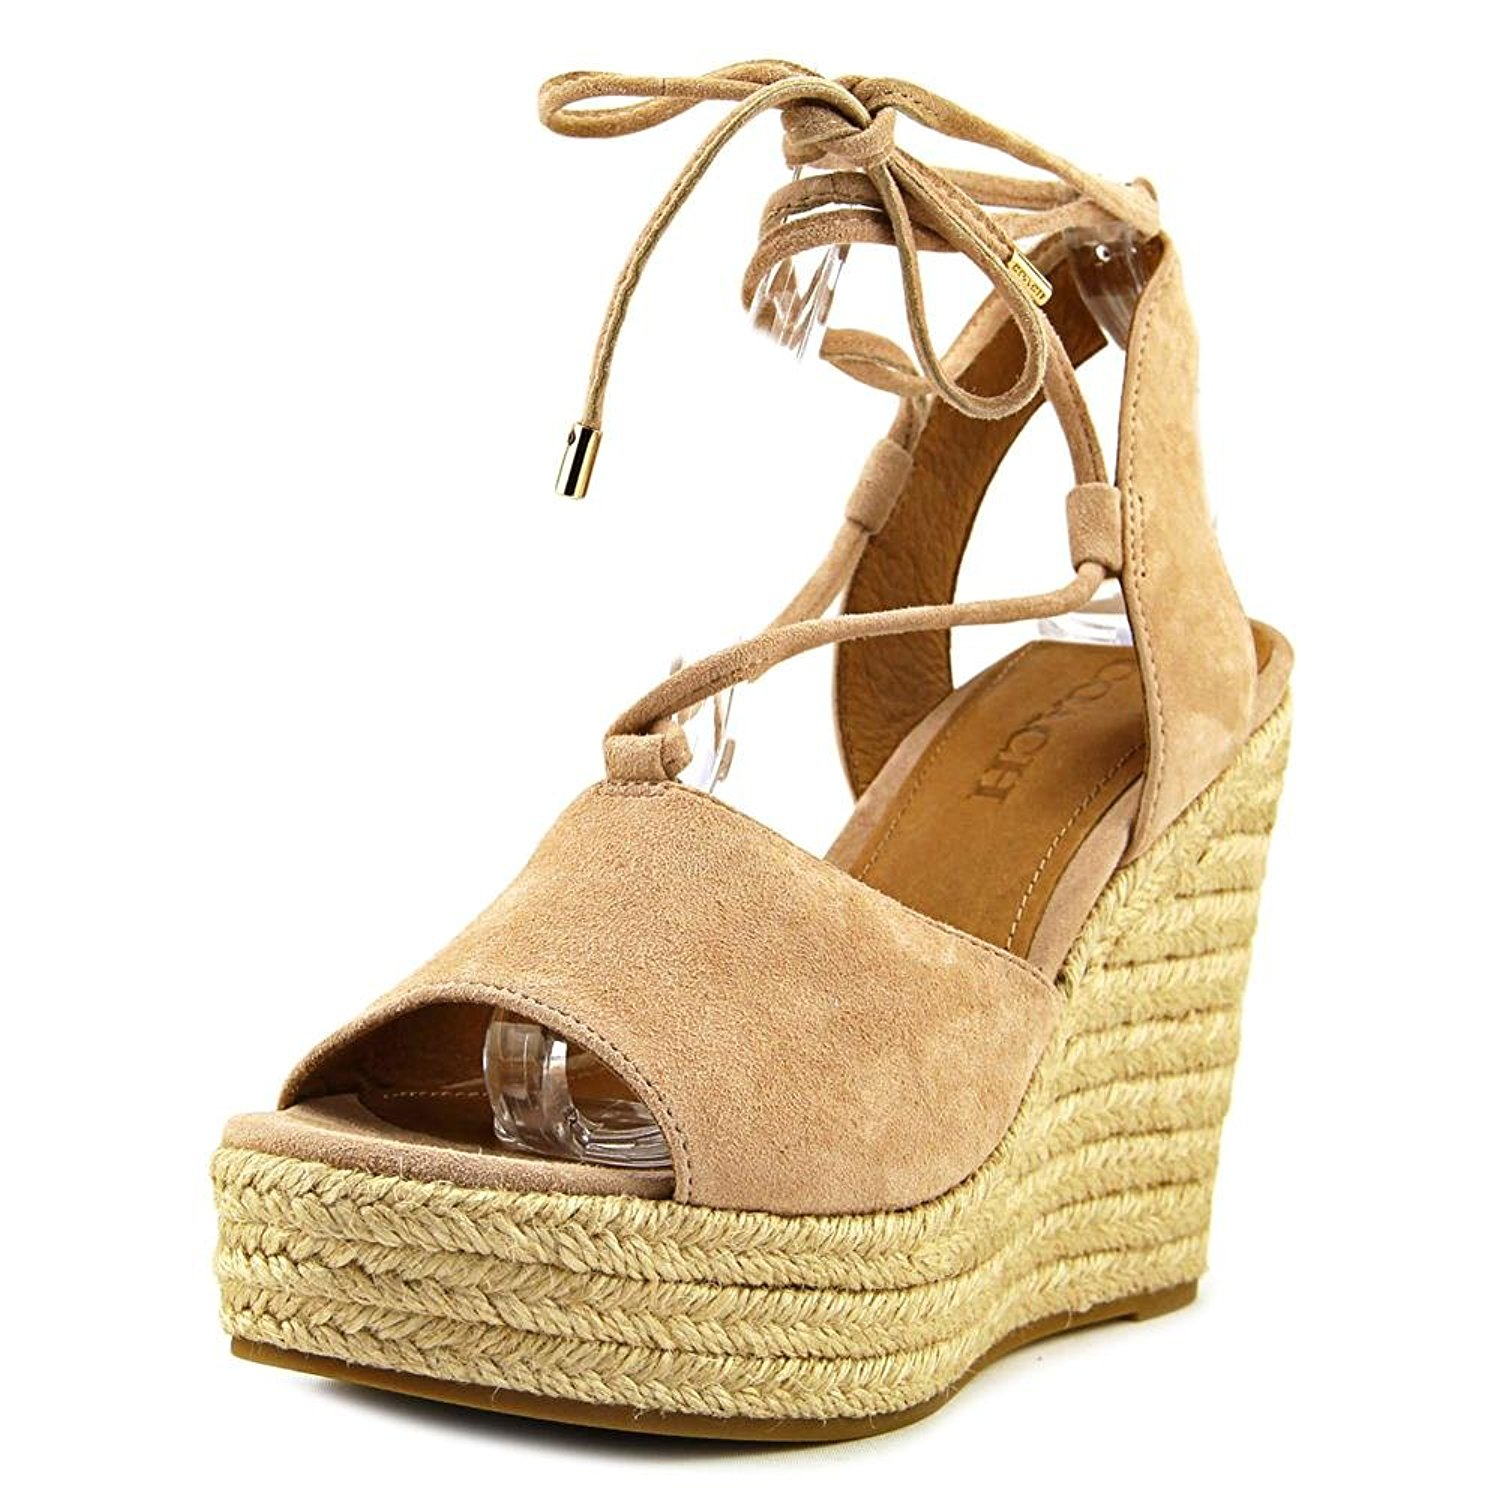 67a15562b88 Coach Womens Dana Open Toe Casual Espadrille Sandals